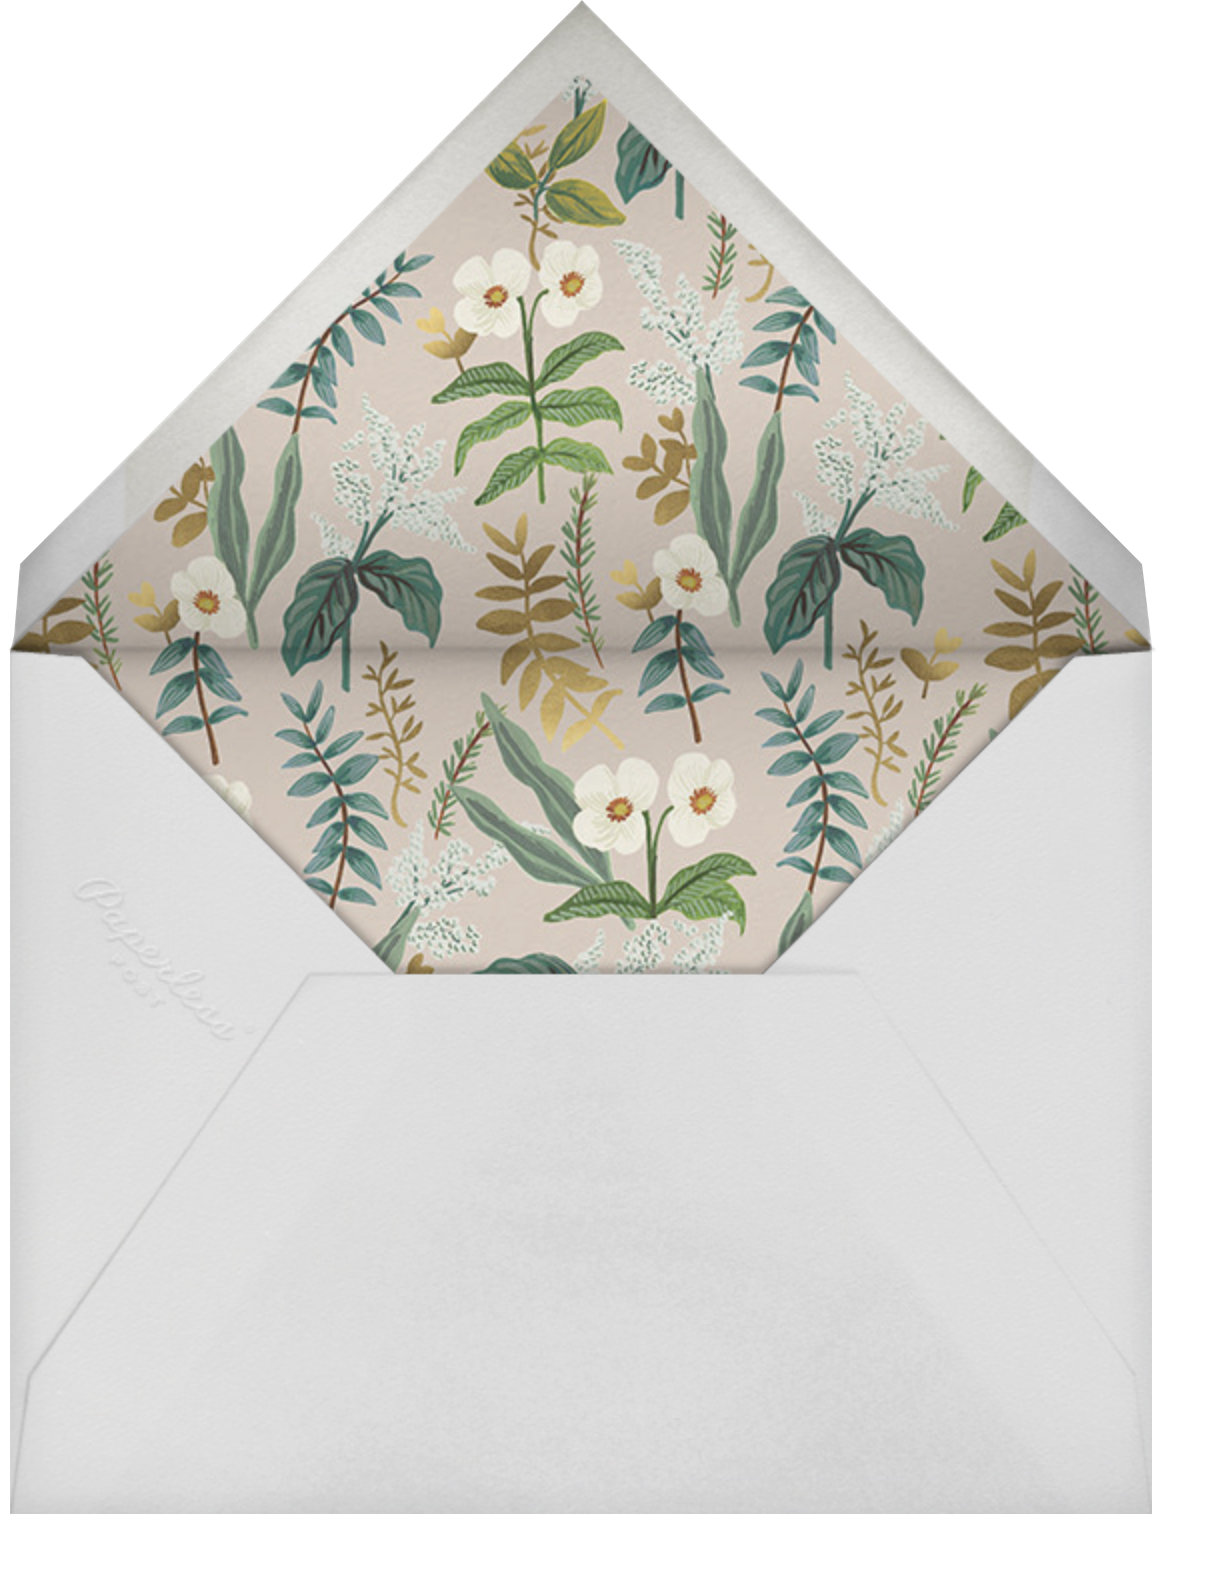 Meadow Garland Photo - Rifle Paper Co. - Photo  - envelope back